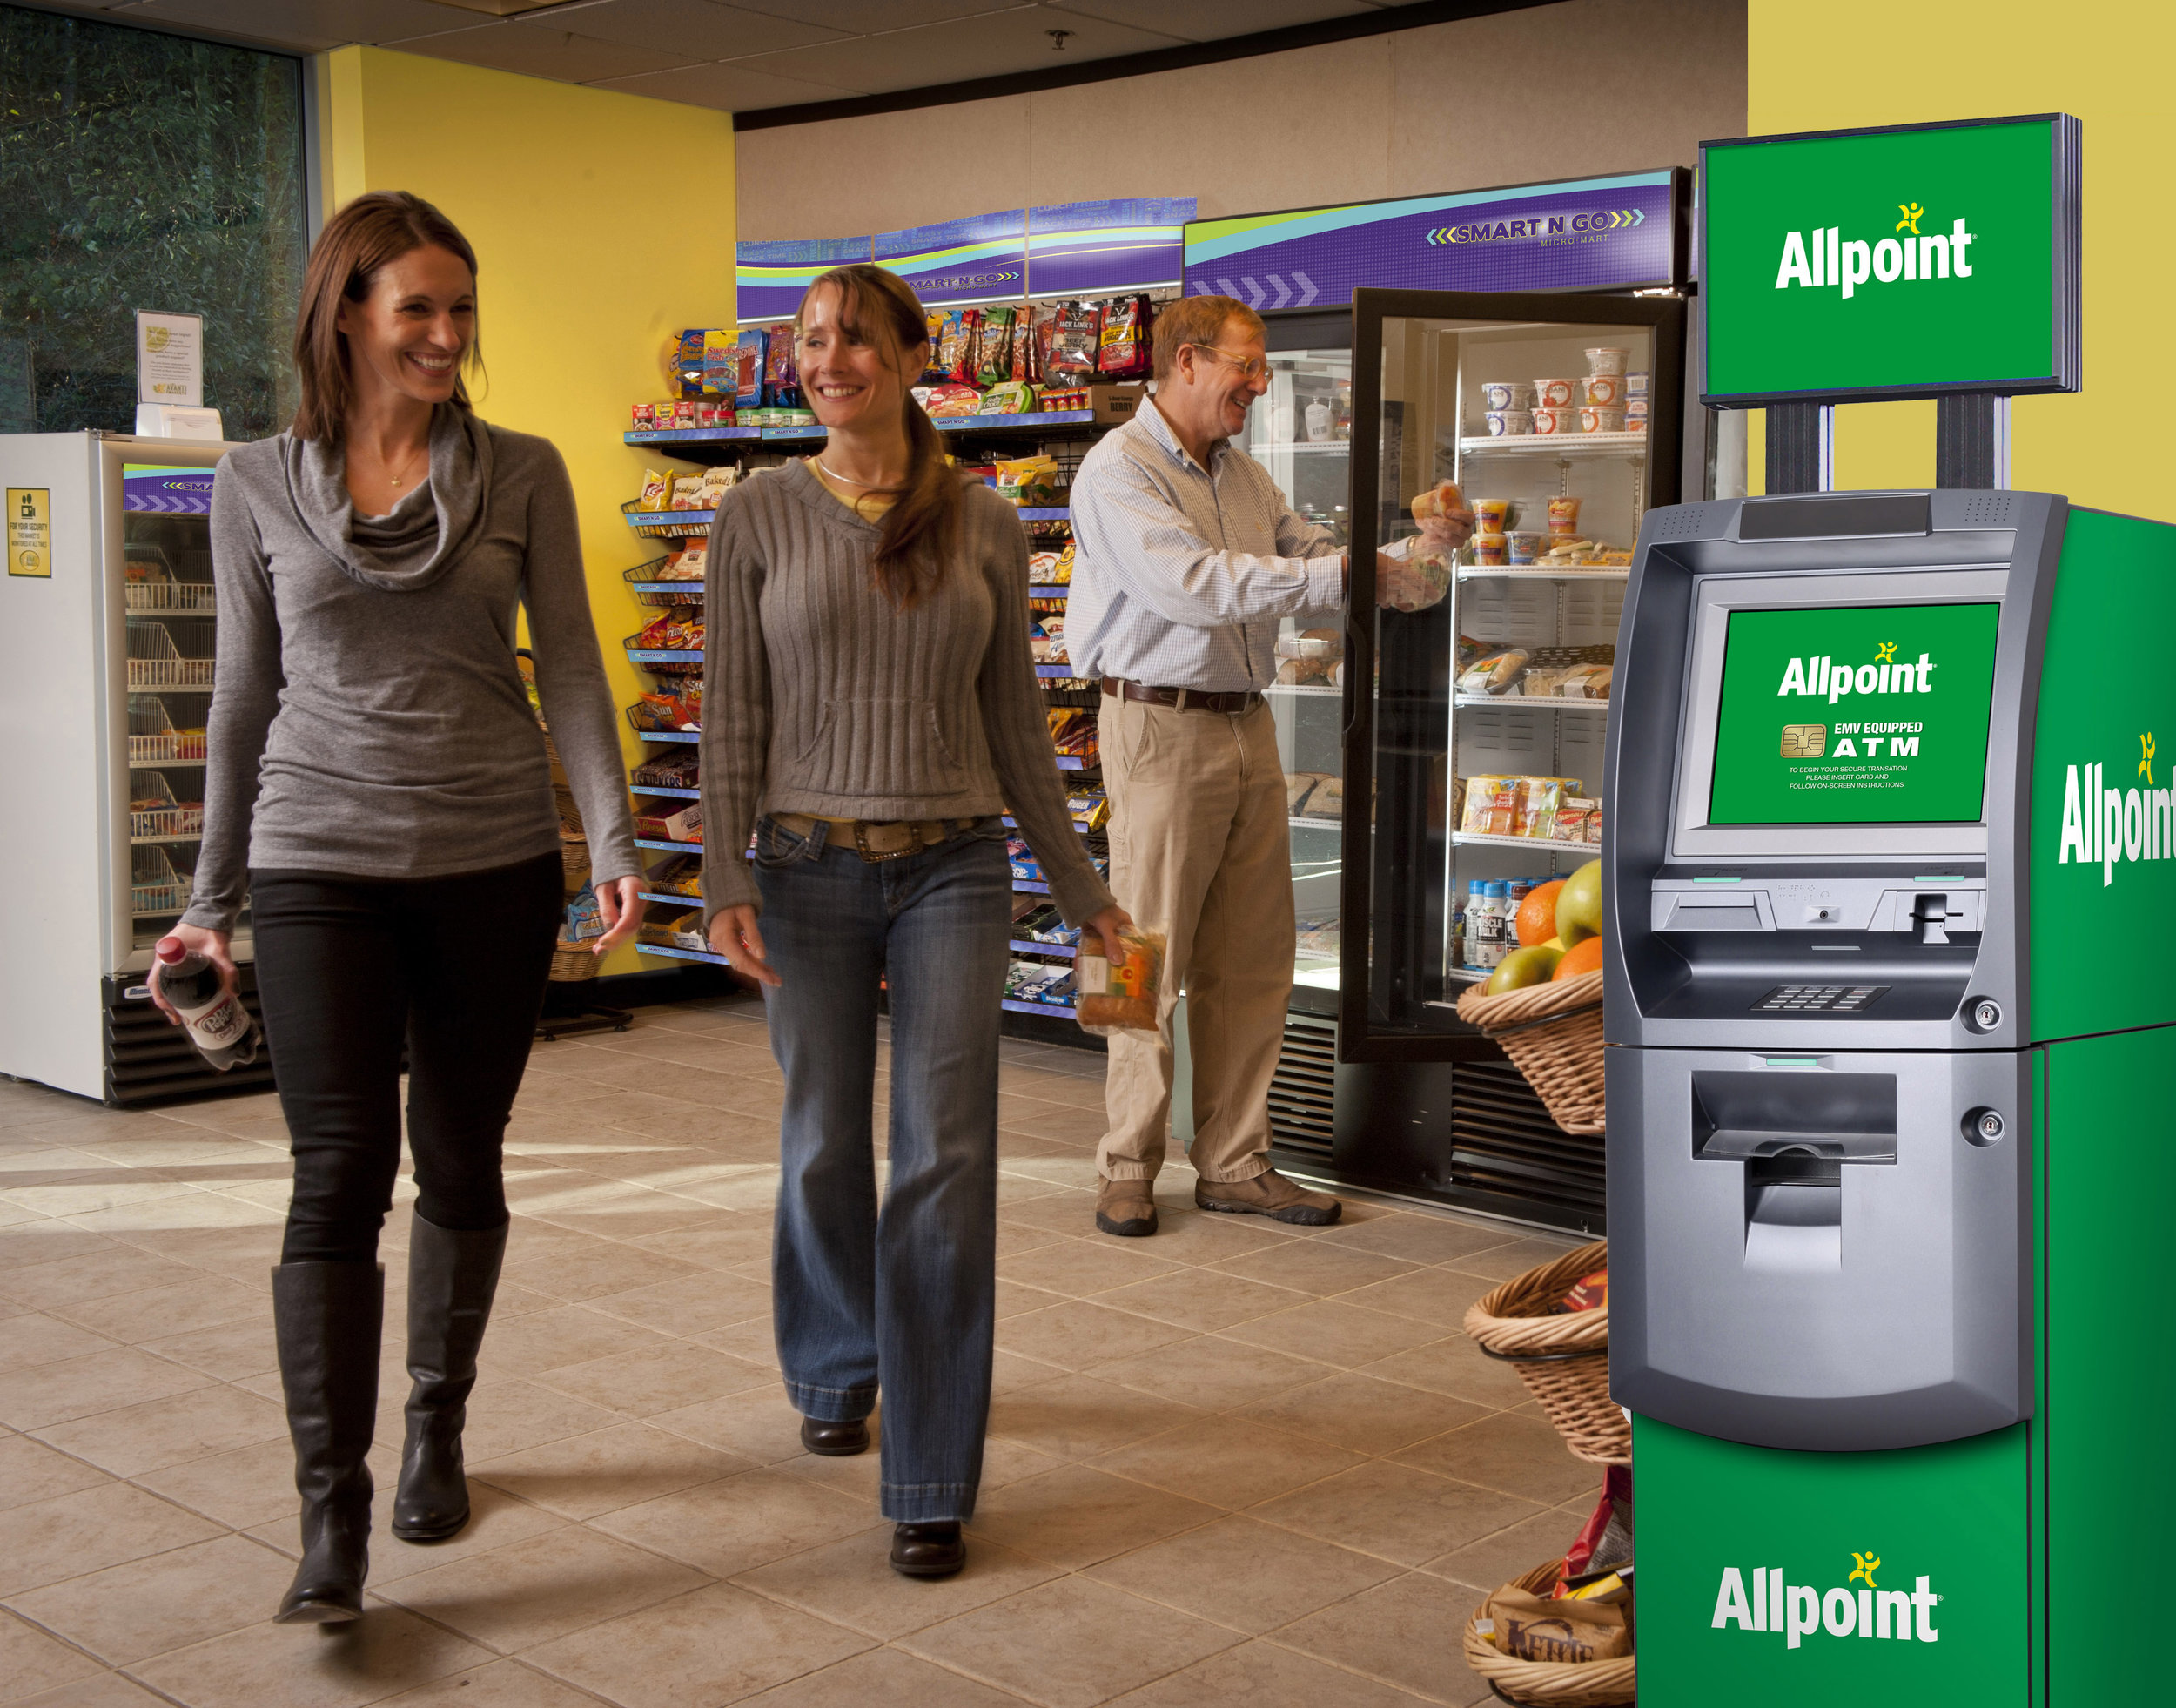 Allpoint ATM at Work.jpg